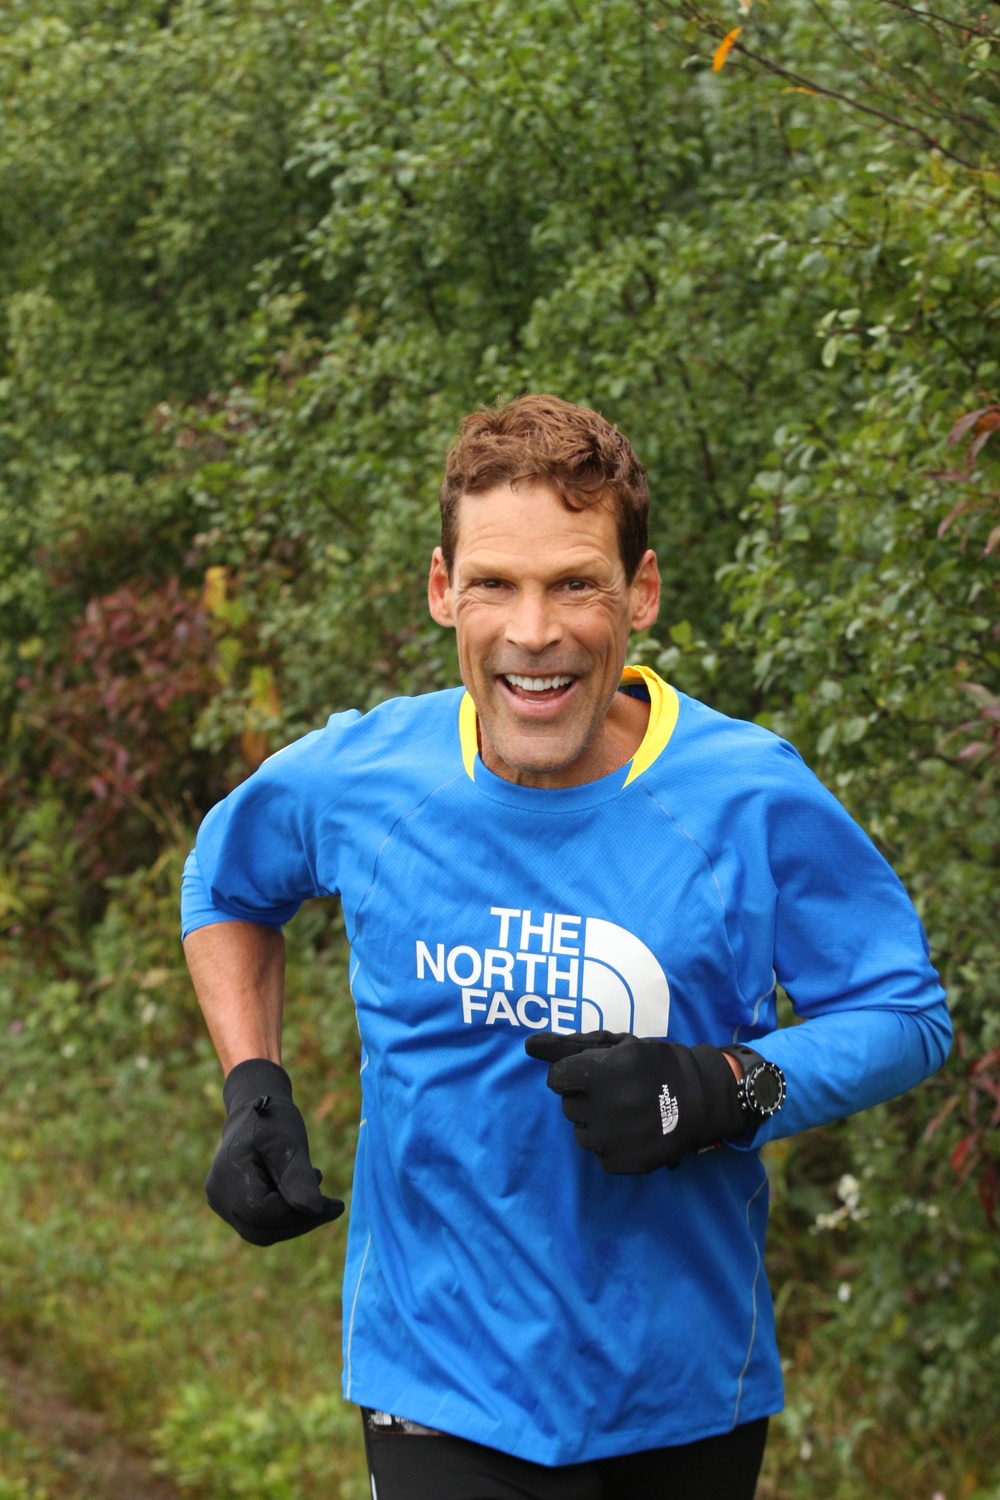 e8fd63119 The North Face Endurance Challenge - WI Reviews | Wisconsin | 5K ...